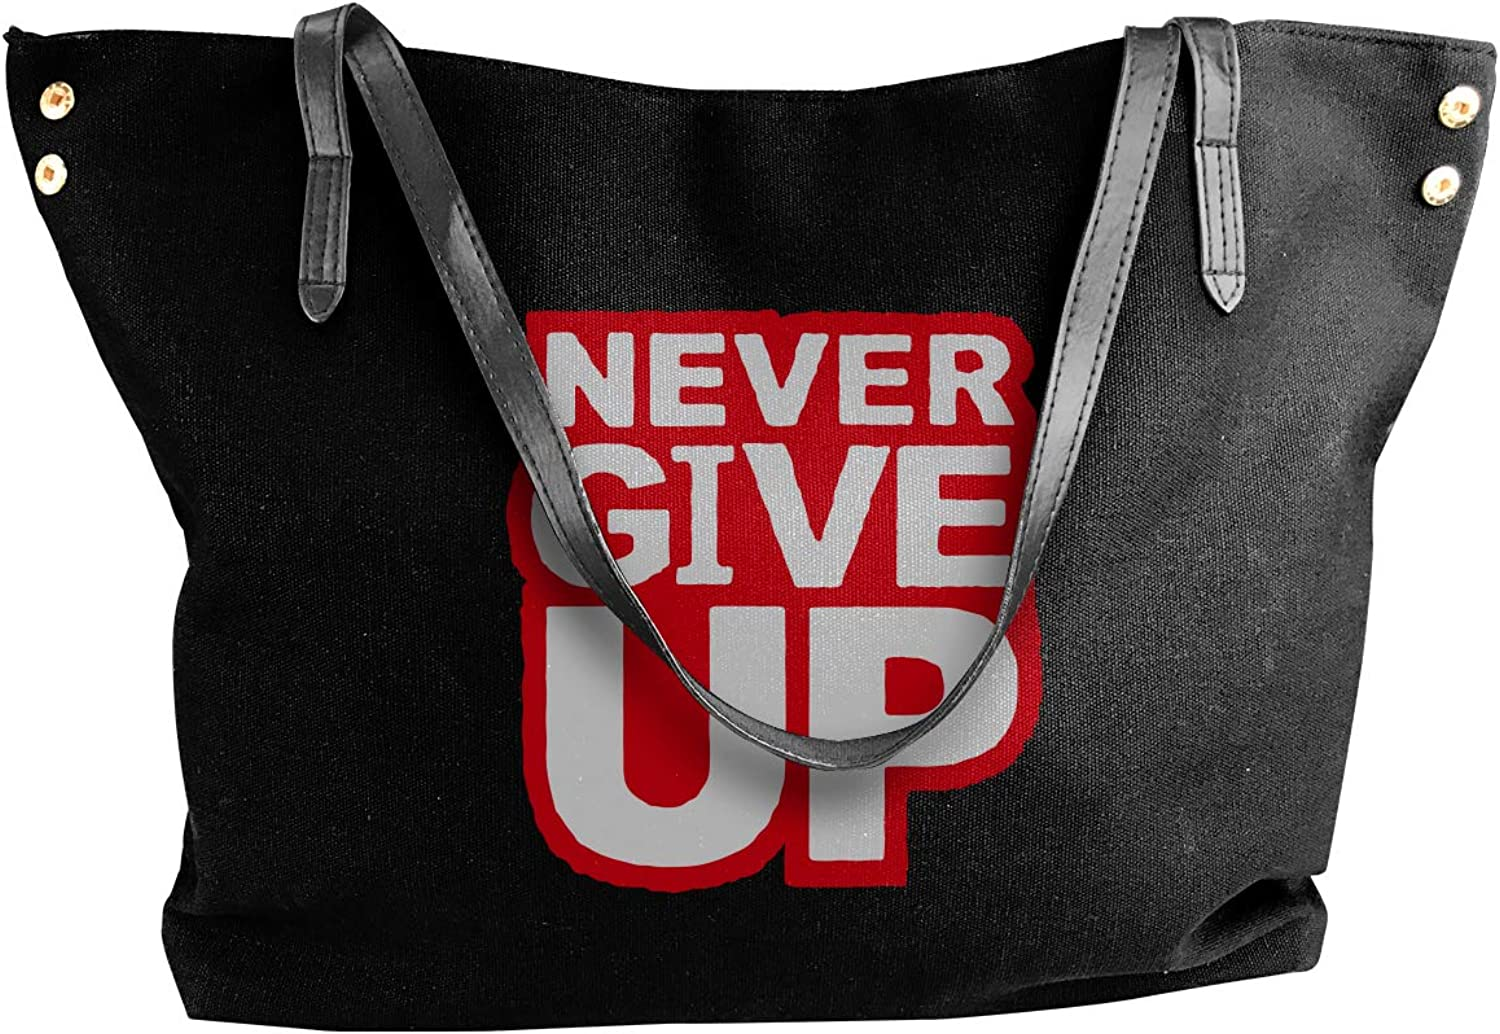 Never Give Up Women'S Casual Canvas Shoulder Bag For Work Work Bag